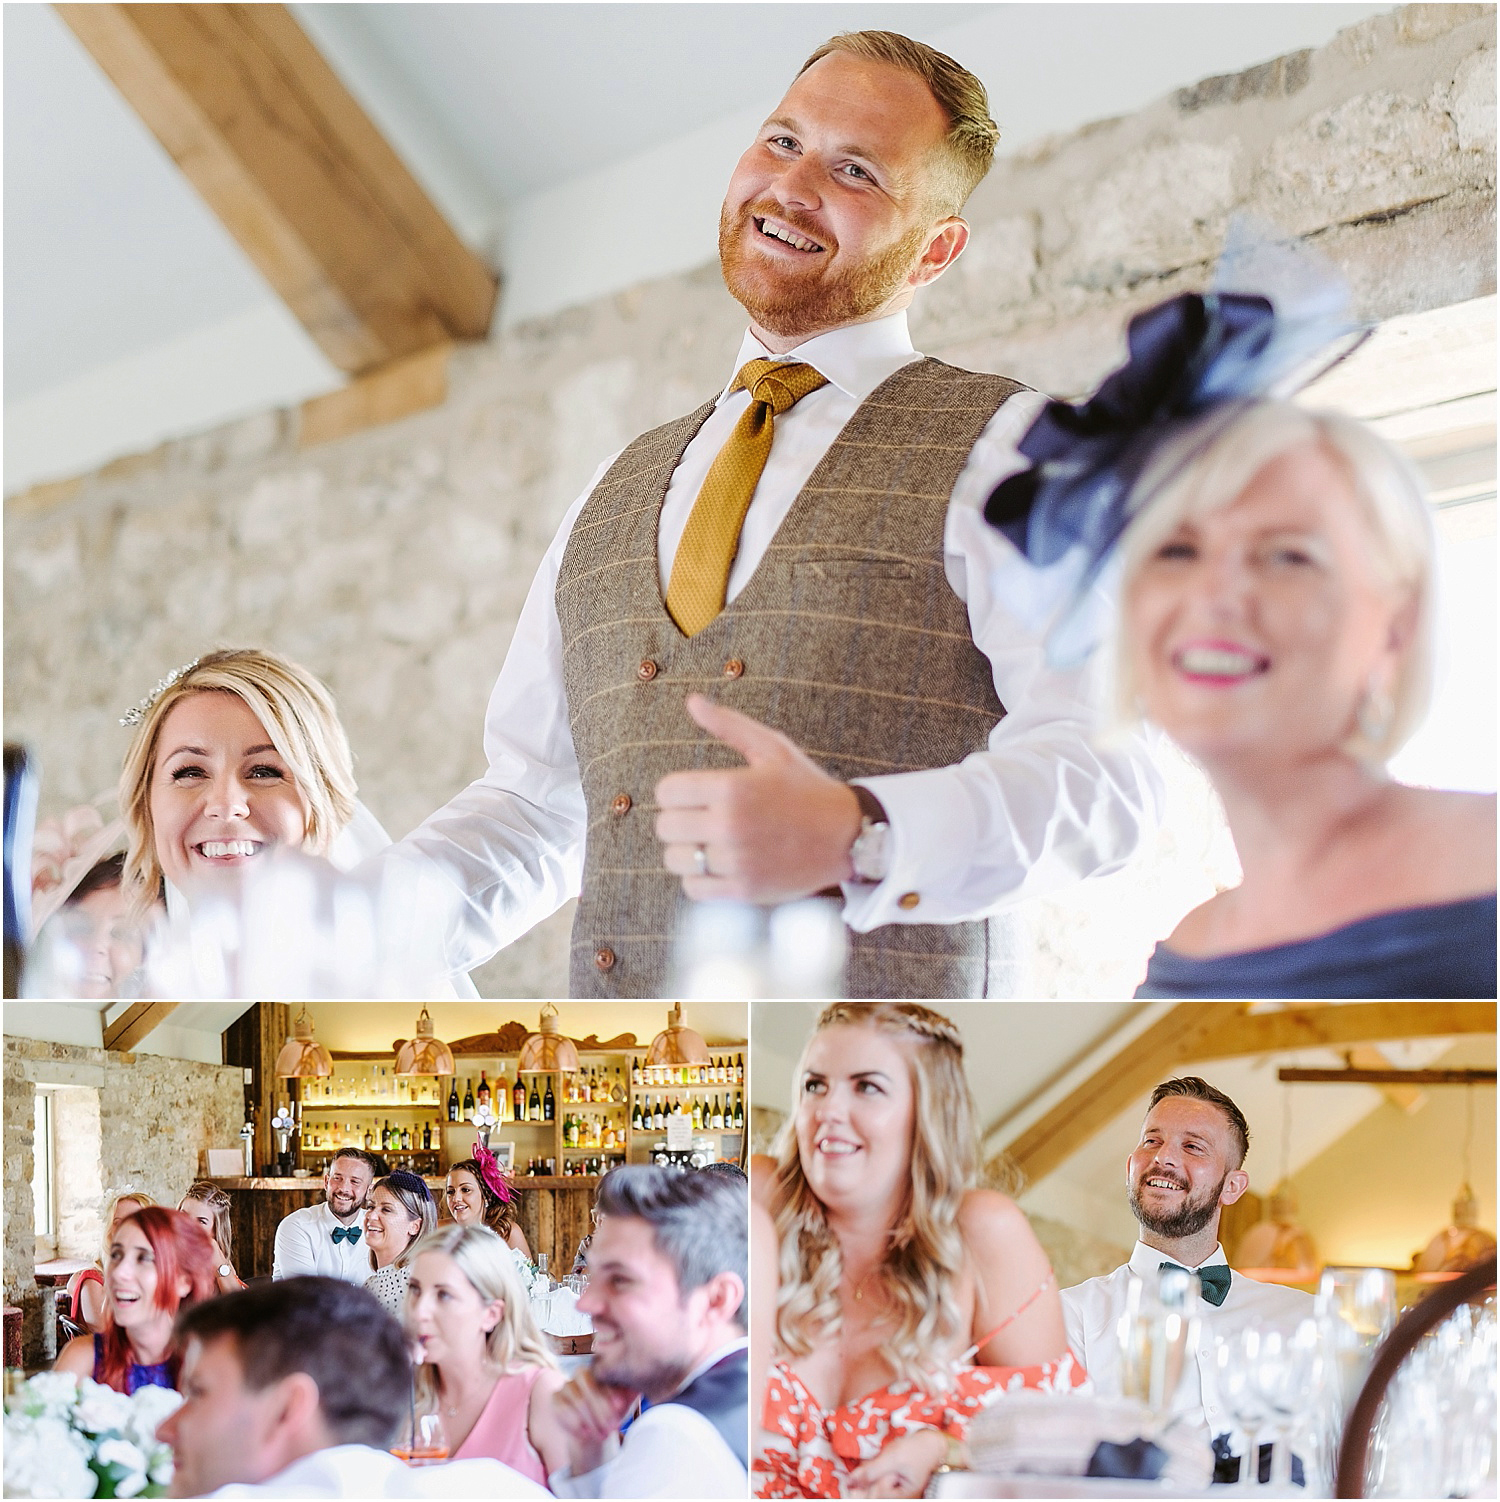 Wedding at Healey Barn - wedding photography by www.2tonephotography.co.uk 074.jpg